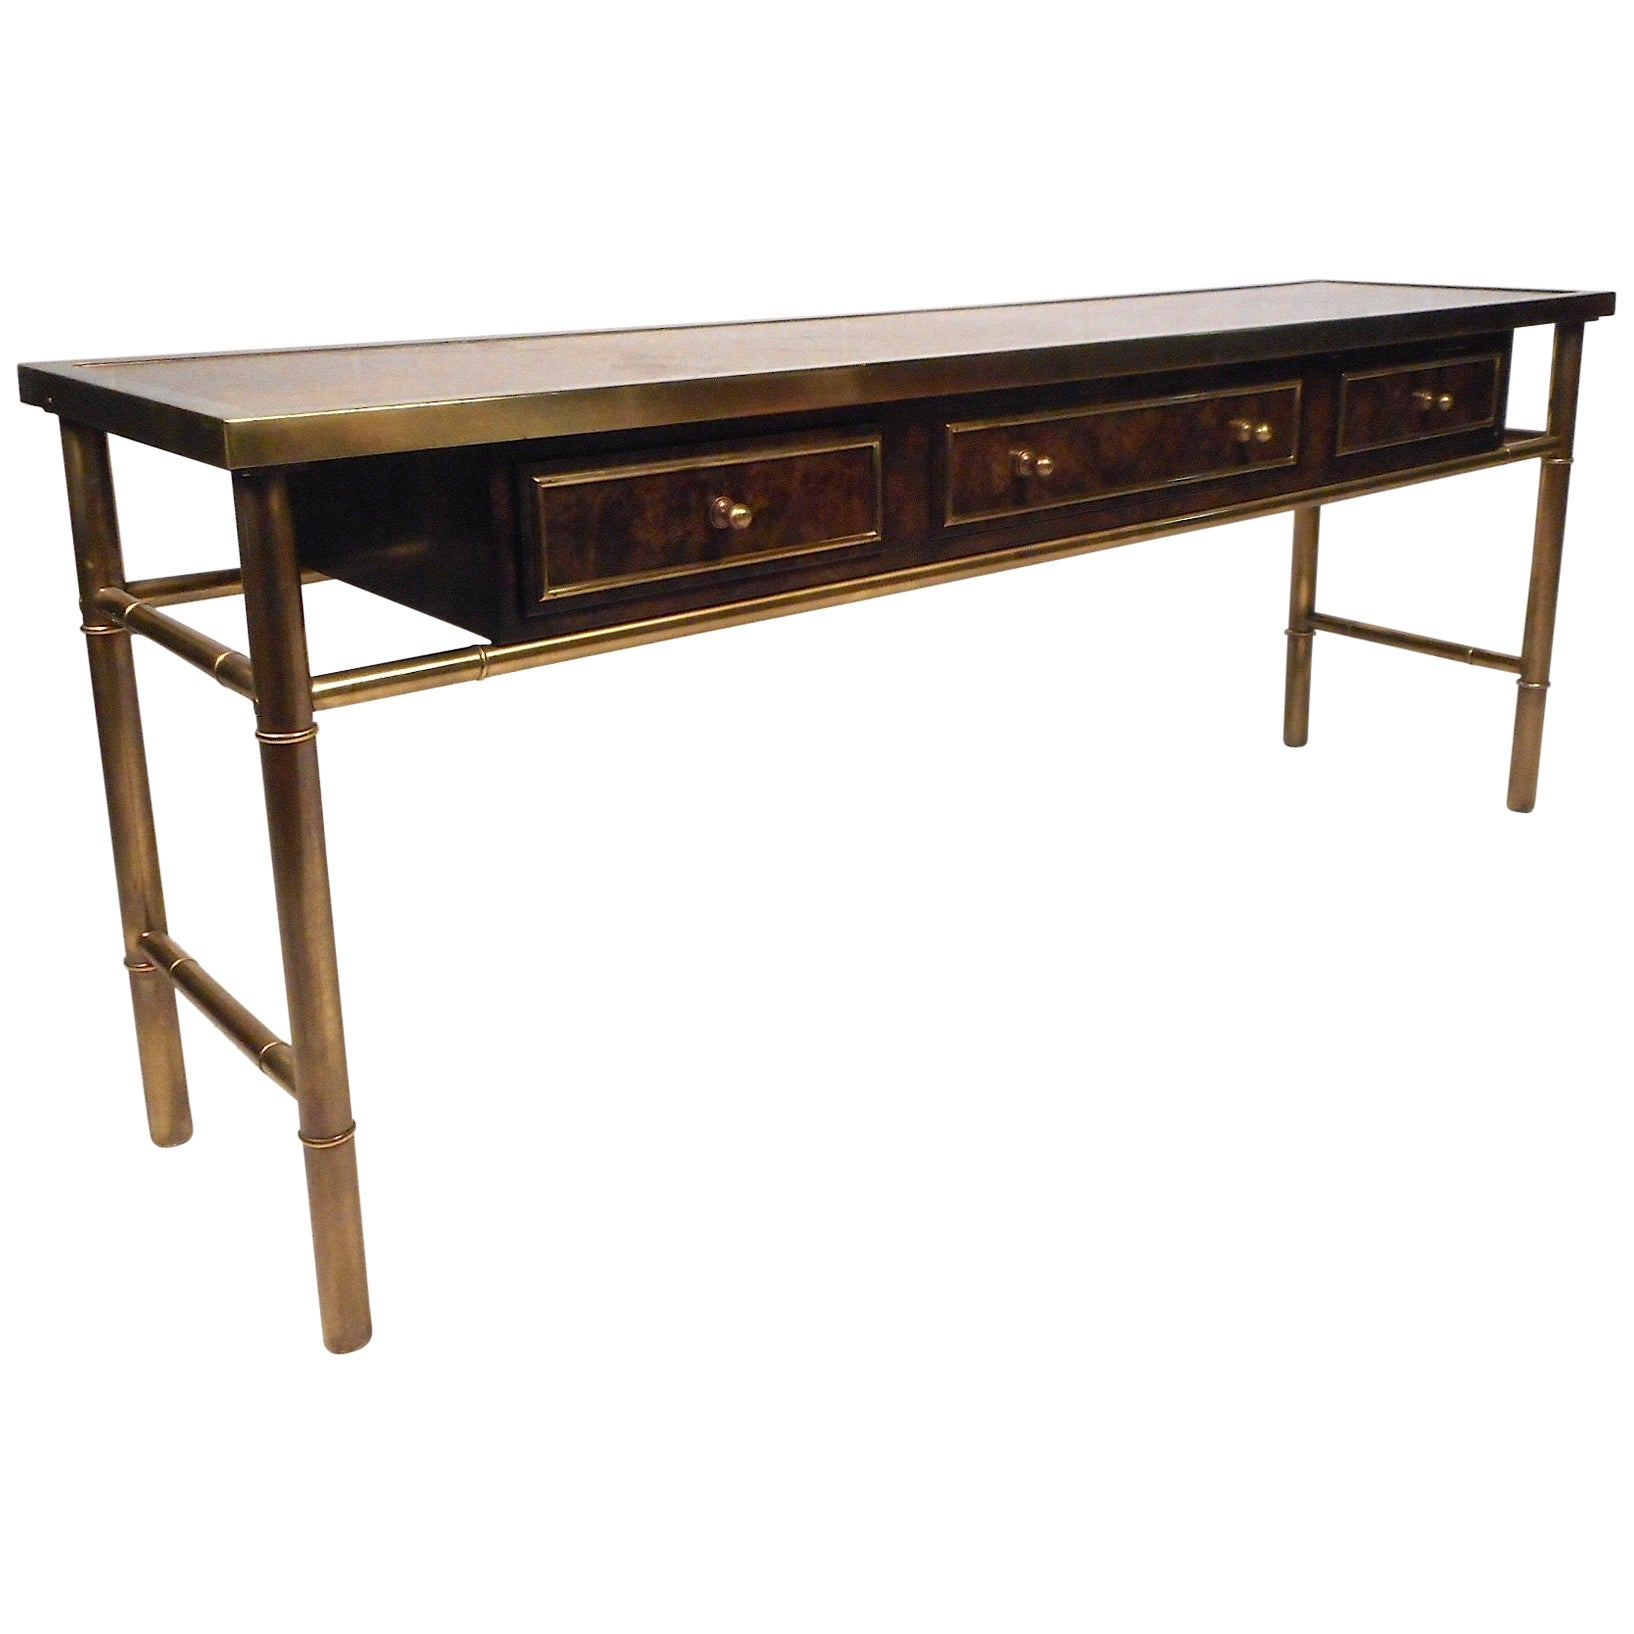 Midcentury Burl Wood and Brass Console Table by Mastercraft